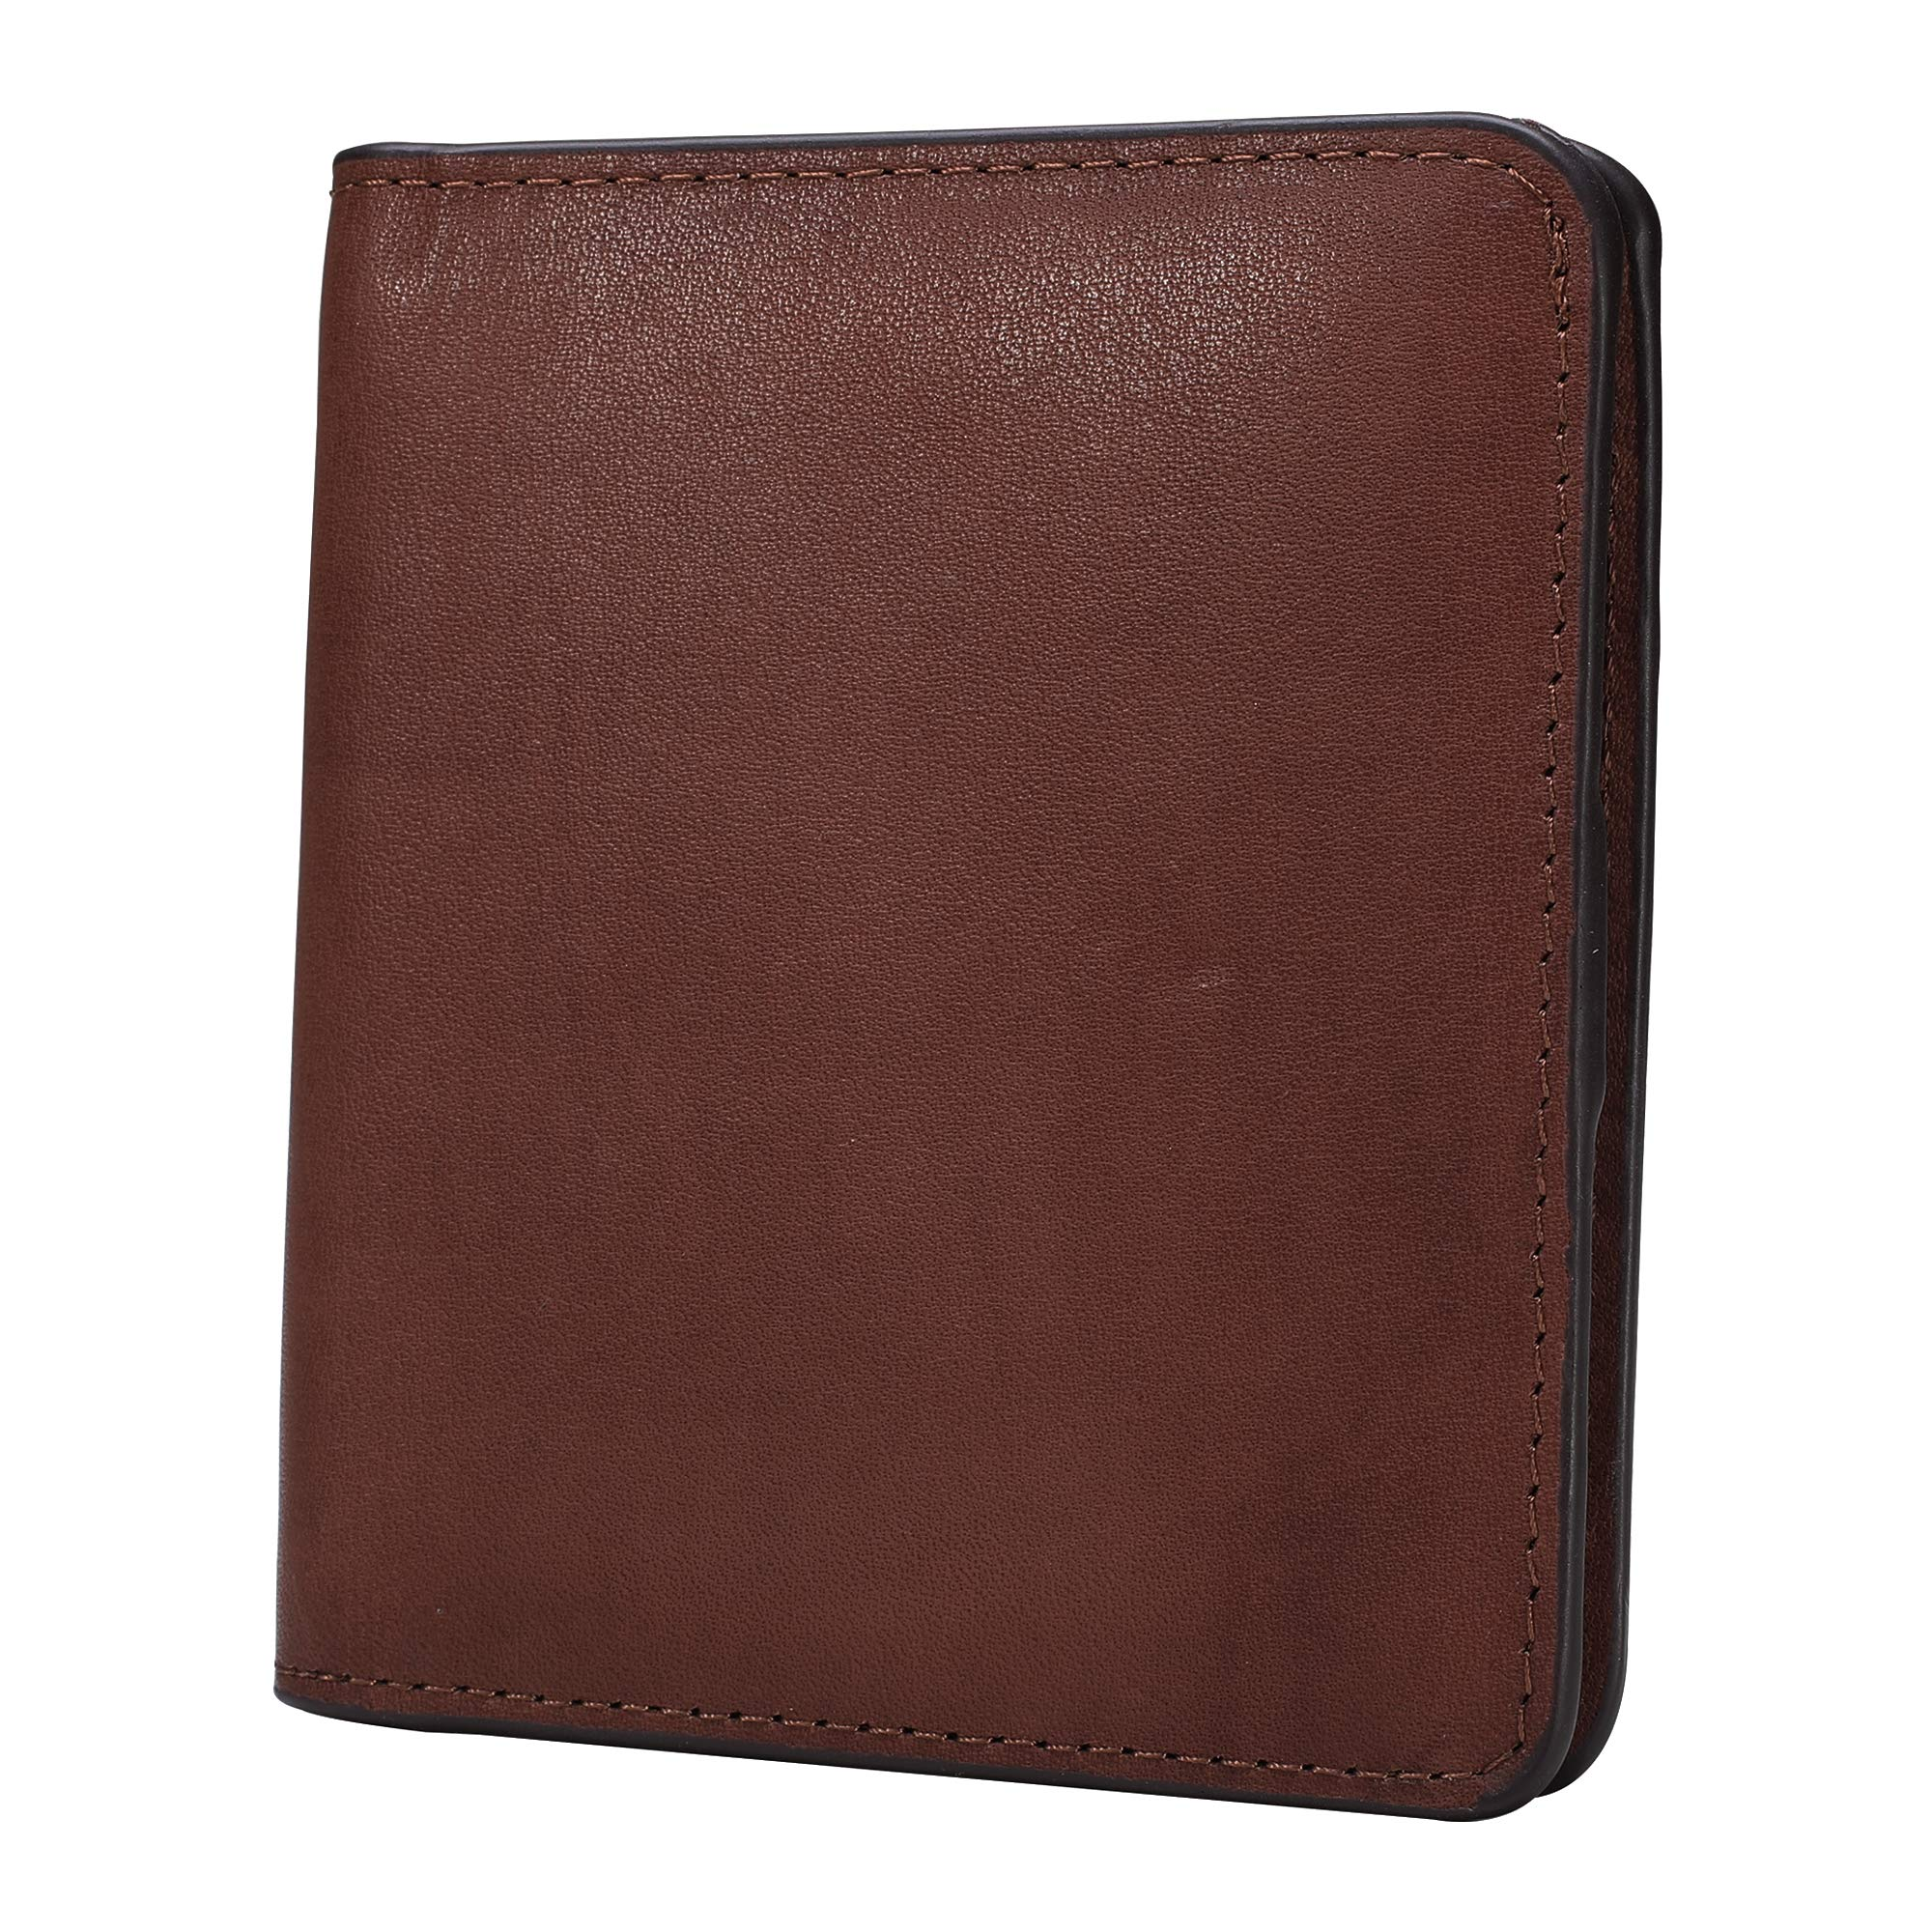 BIG SALE-AINIMOER Women's RFID Blocking Leather Small Compact Bifold Pocket Wallet Ladies Mini Purse with id Window (Vintage Brown) by AINIMOER (Image #4)